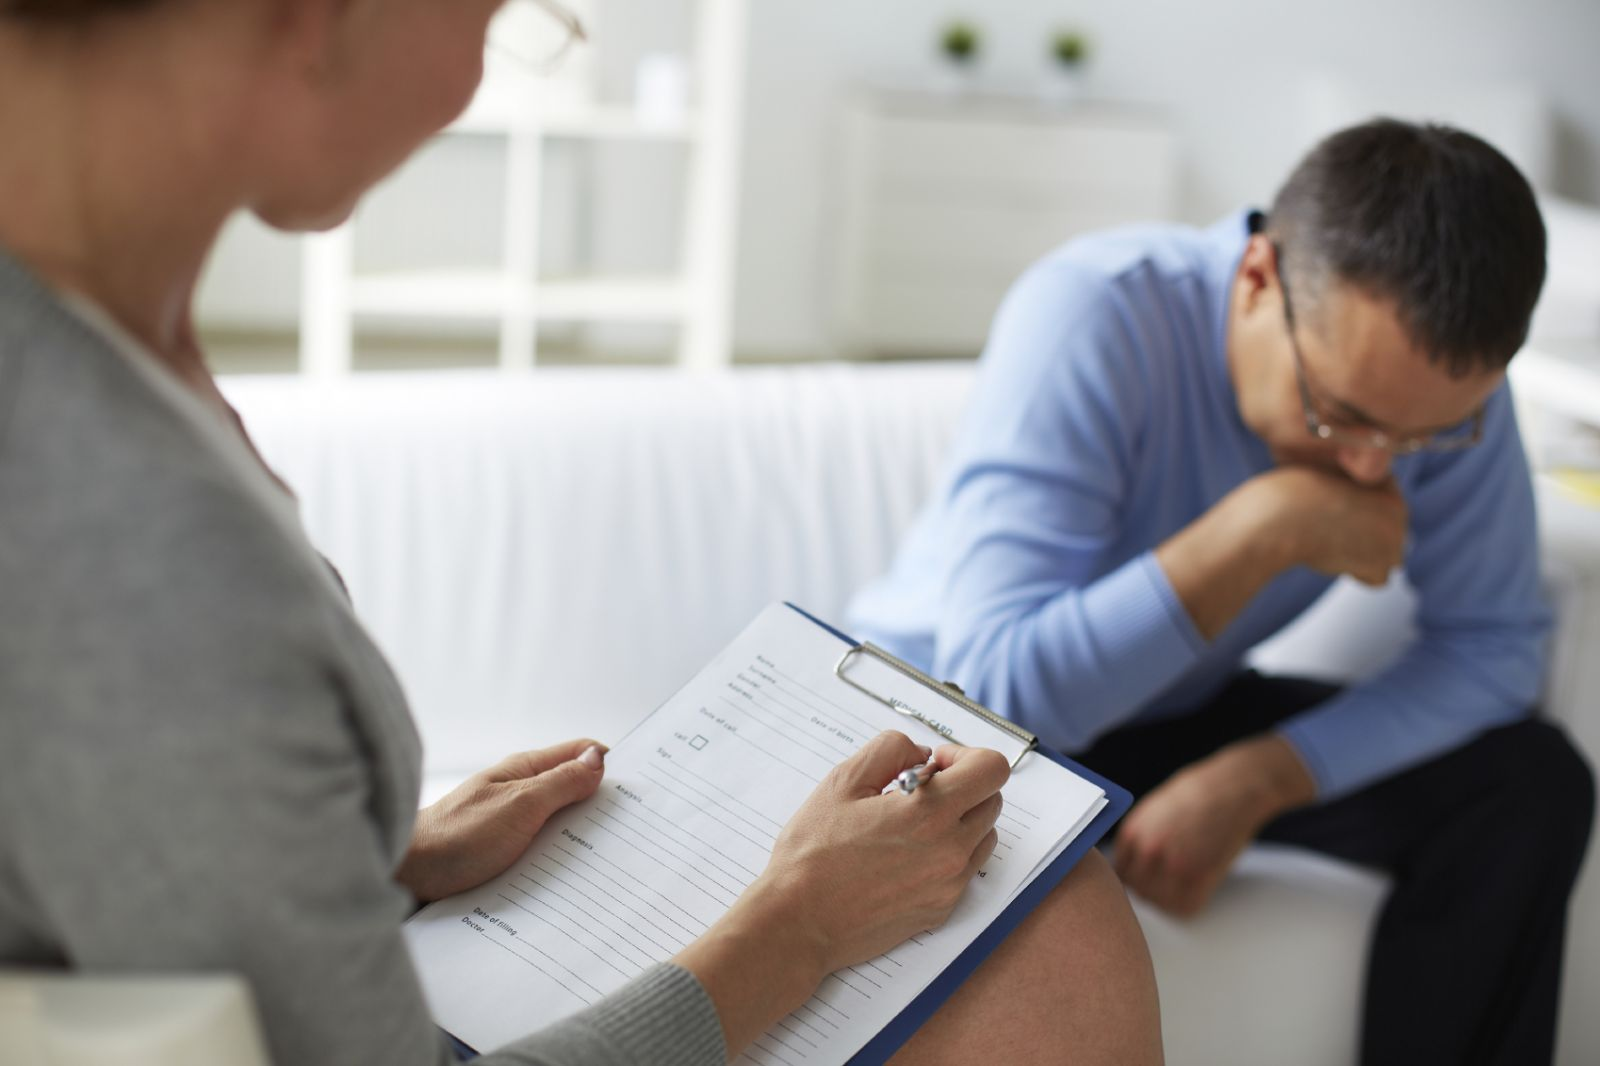 10 Questions To Ask When Choosing A Therapist